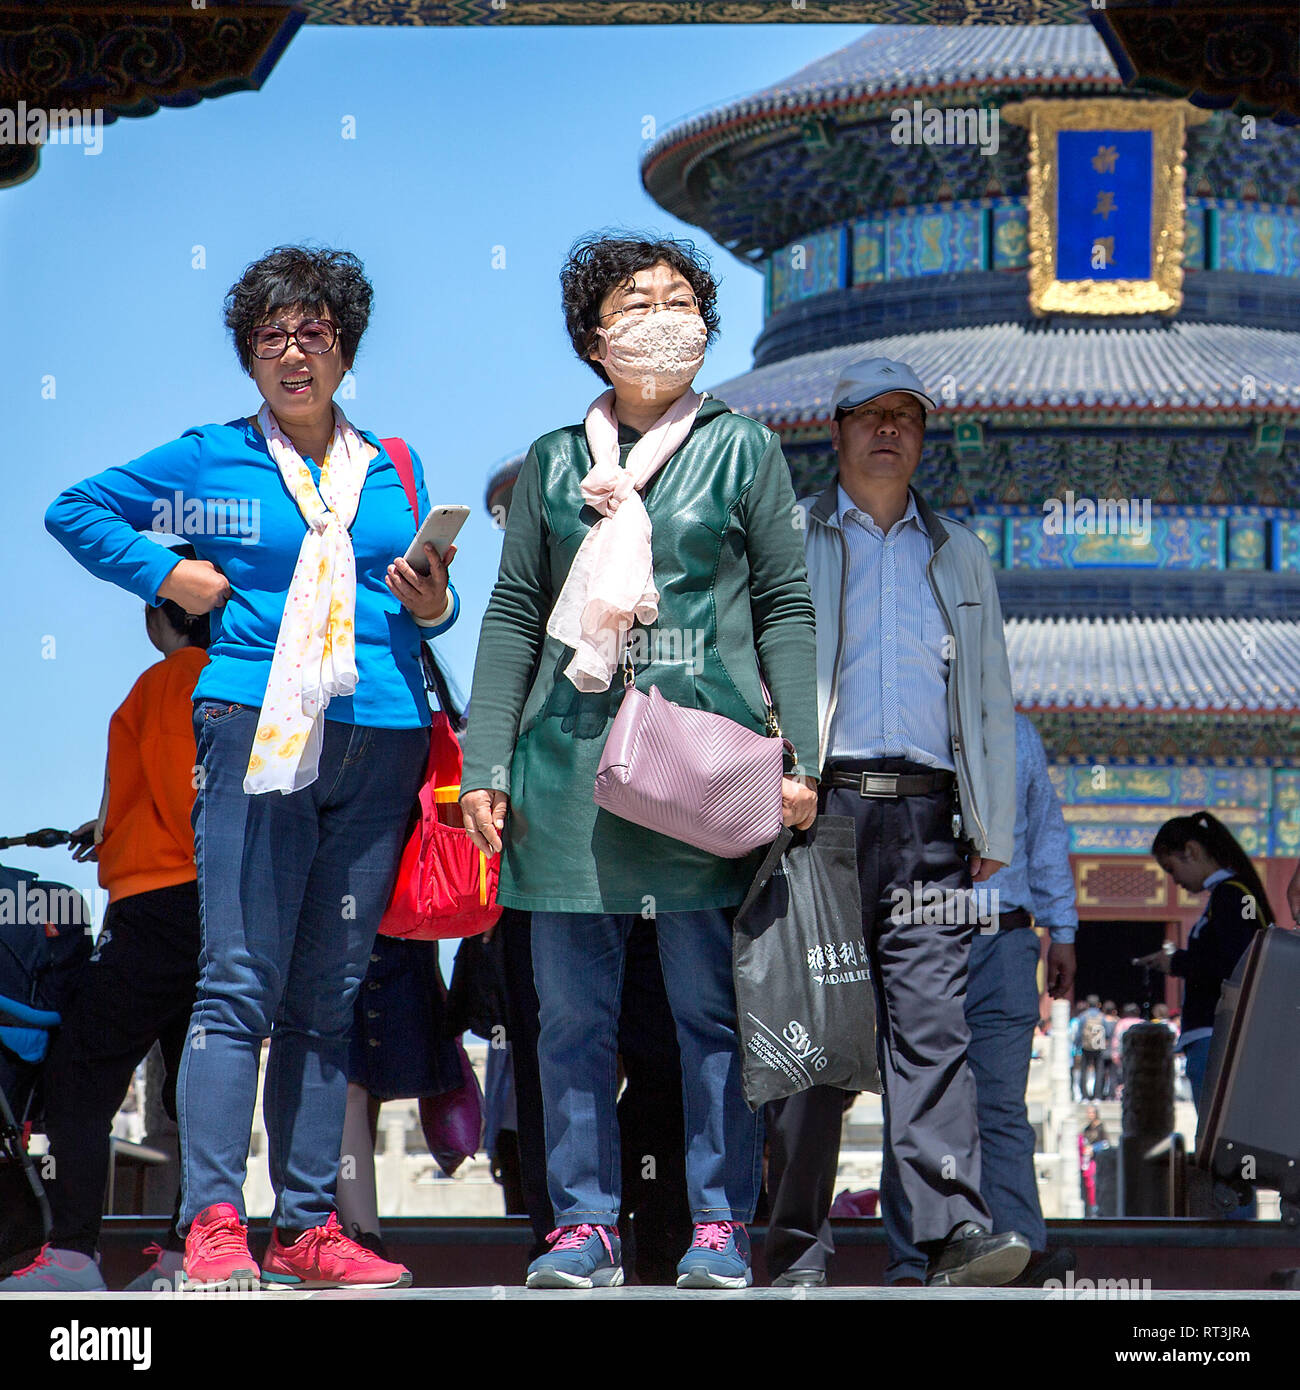 Two female tourists stand in The Temple of Heaven complex, one wears a pollution mask. Behind them The Hall of Prayer for Good Harvests can be seen. - Stock Image